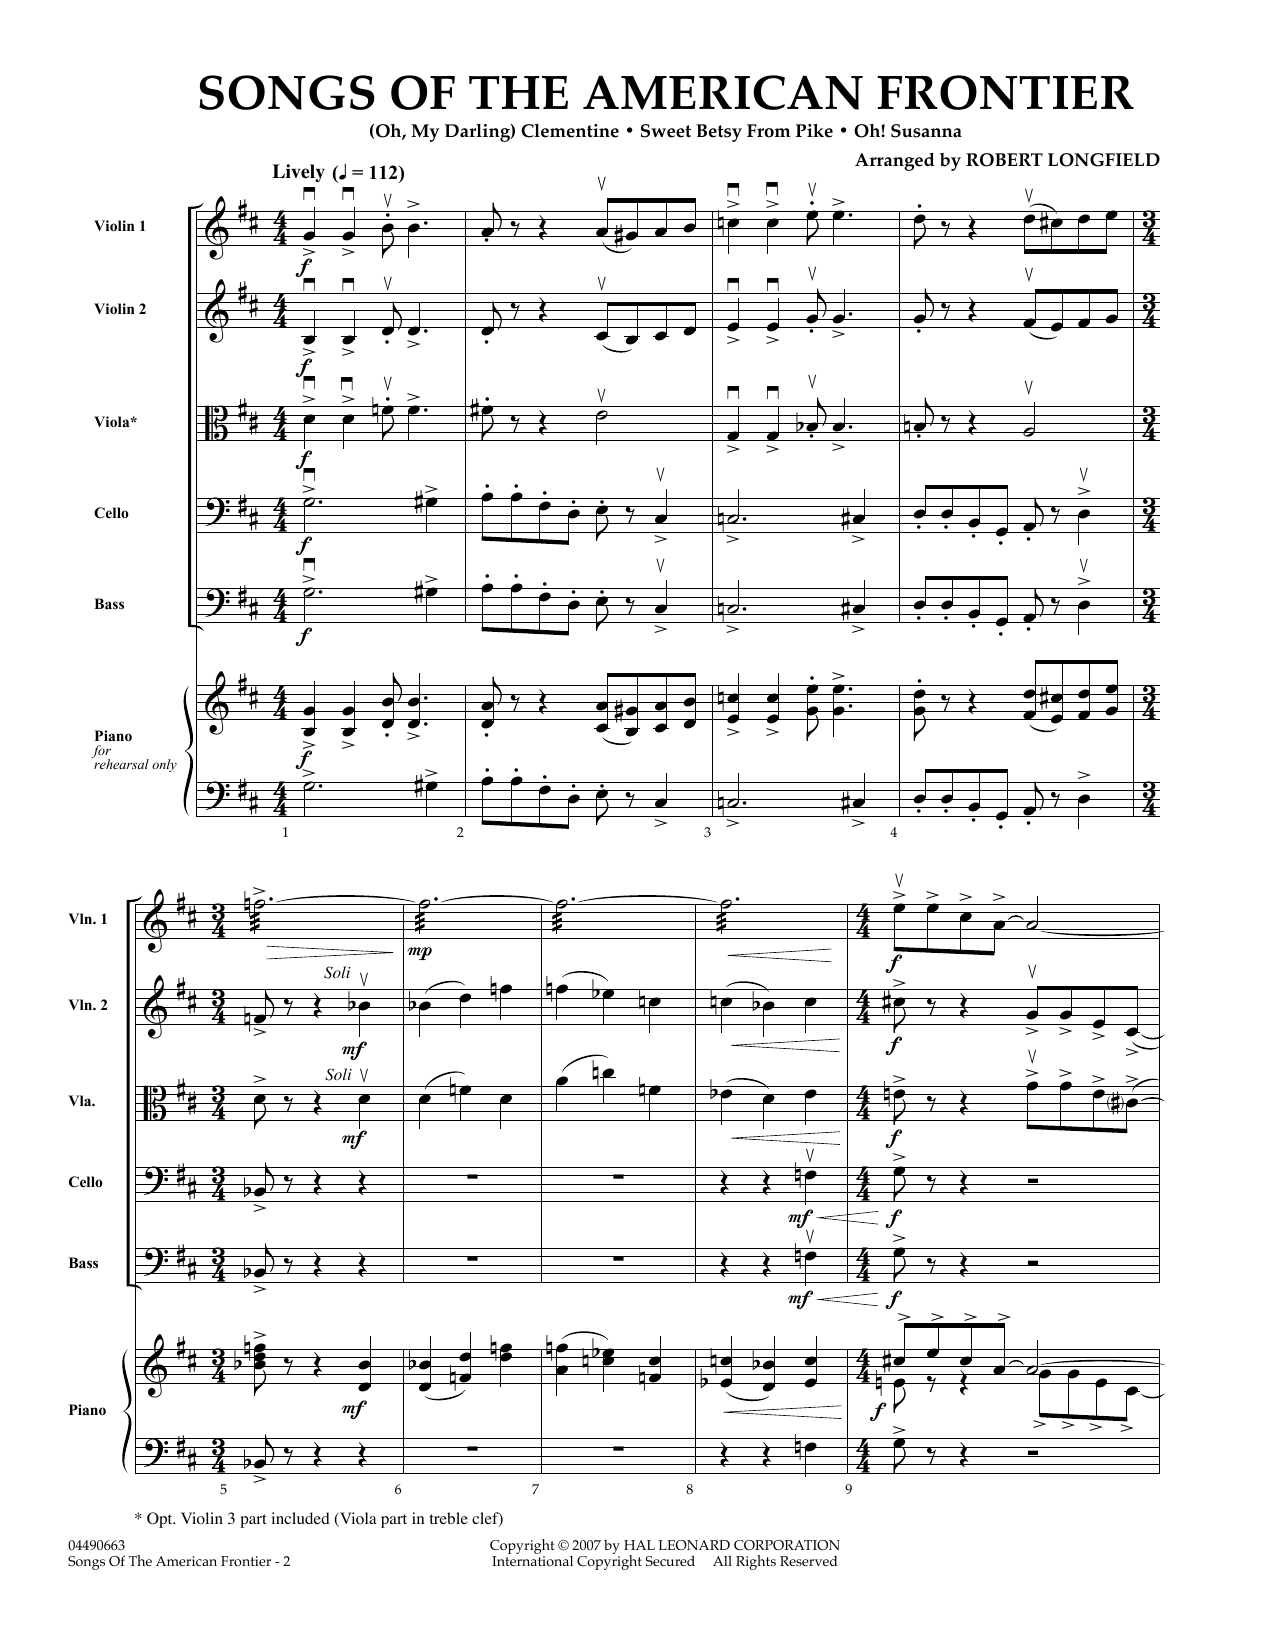 Songs Of The American Frontier (COMPLETE) sheet music for orchestra by Robert Longfield